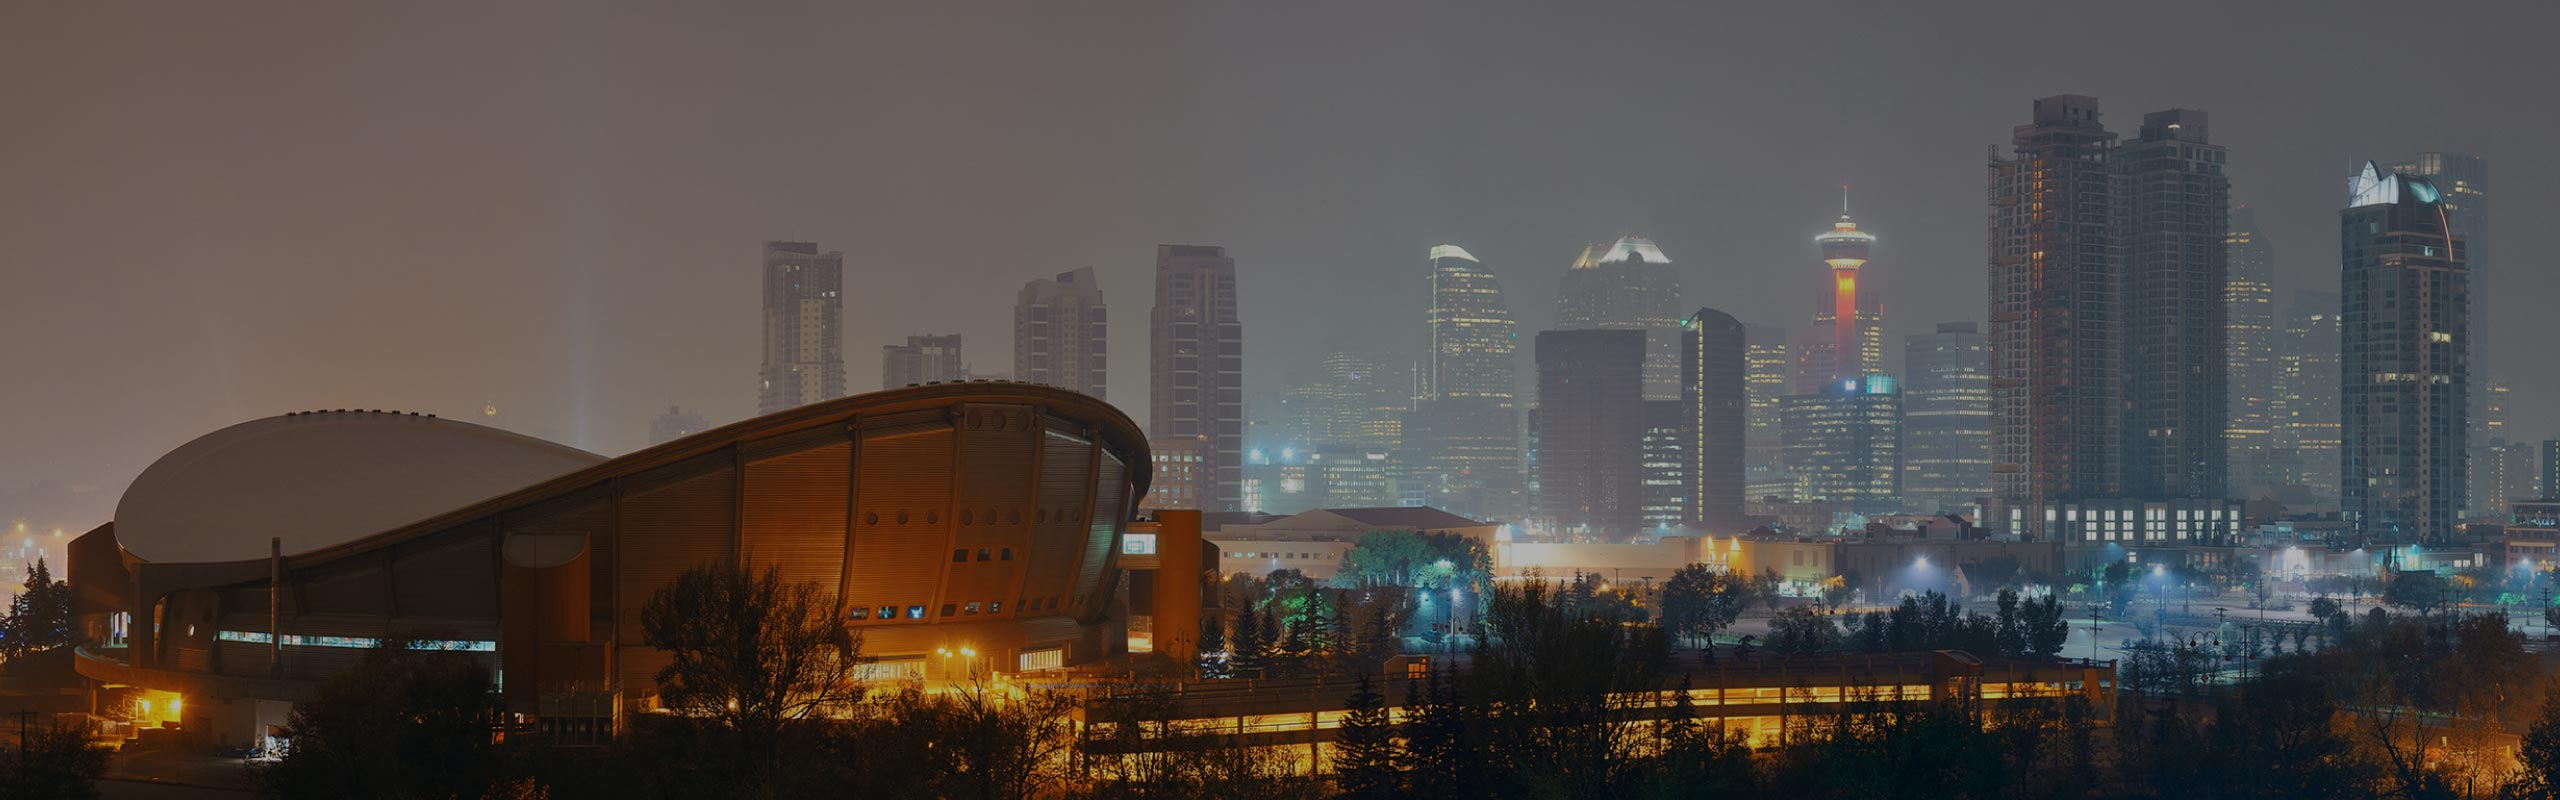 Calgary, Alberta skyline at night